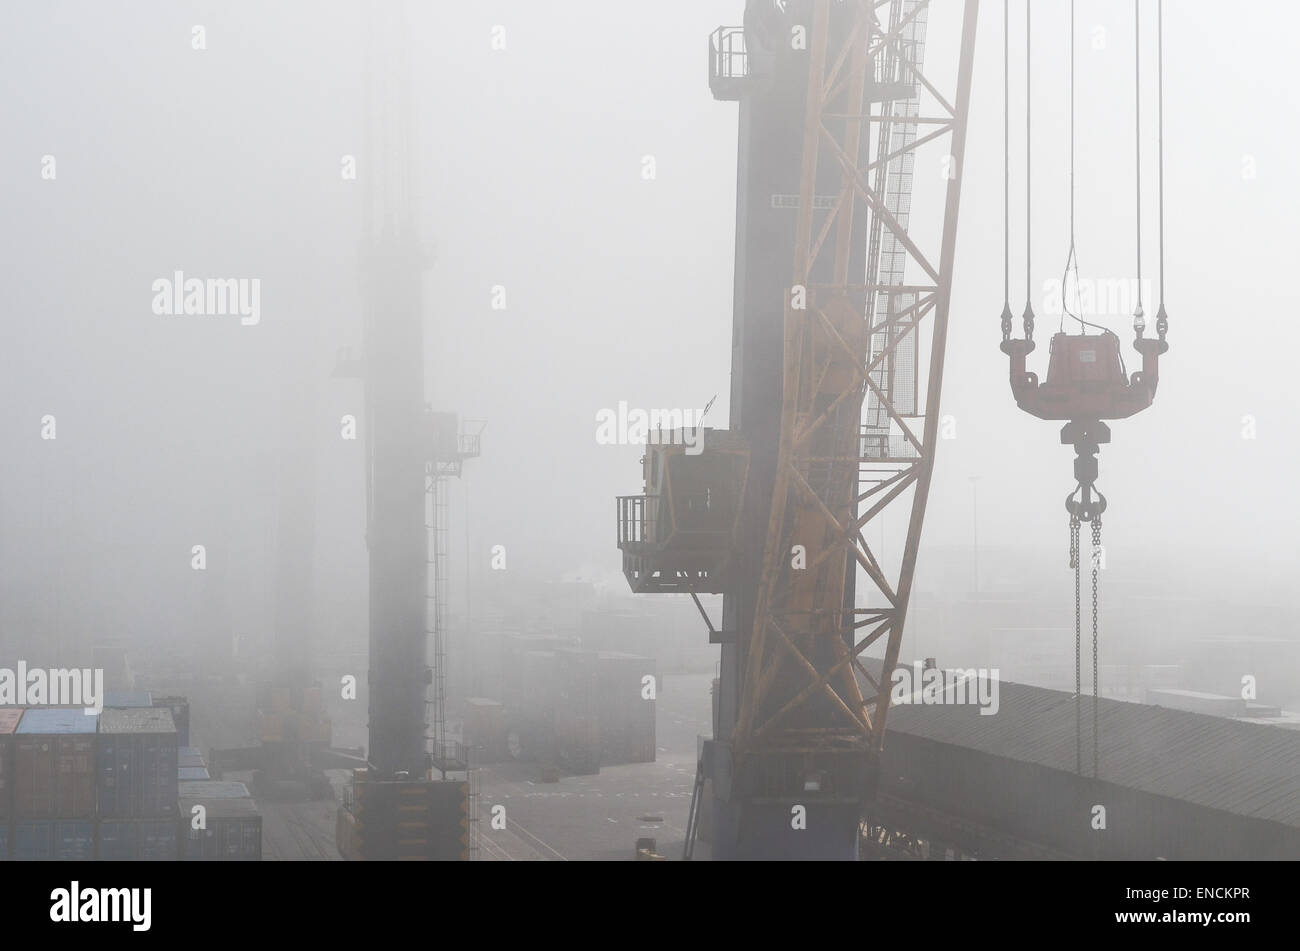 Liebherr LHM cranes in the fog of the general cargo terminal of the port of Walvis Bay, Namibia - Stock Image